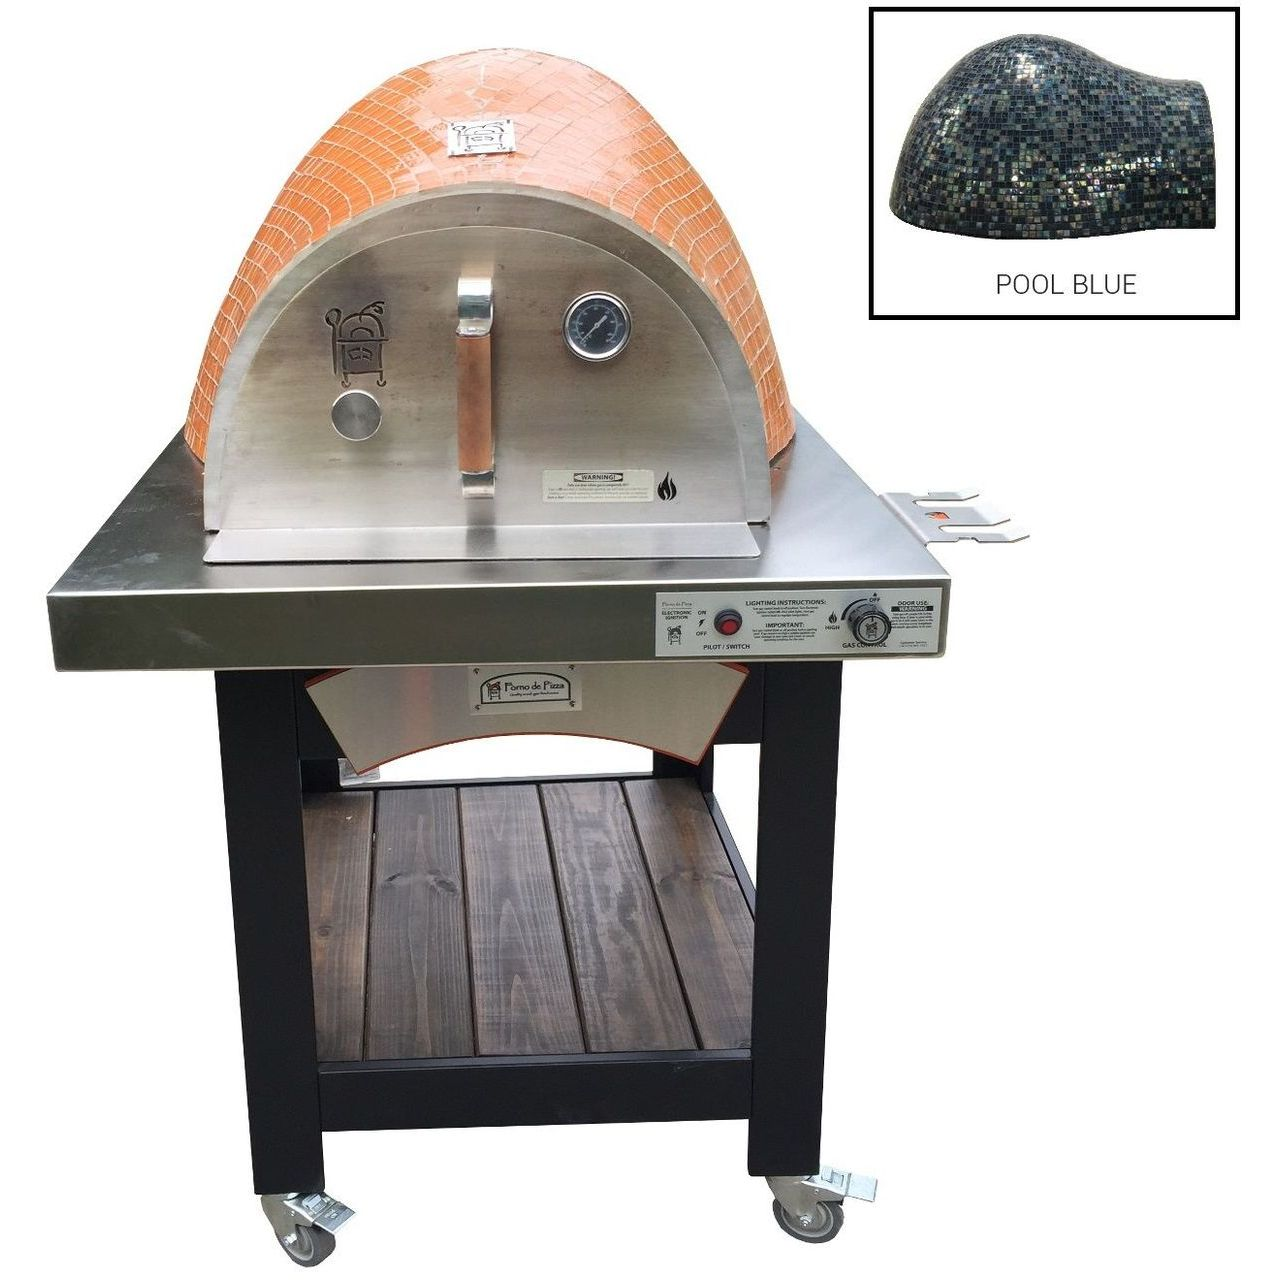 HPC Forno Hybrid Gas/Wood Oven With EI & Cart in Pool Blue - LP